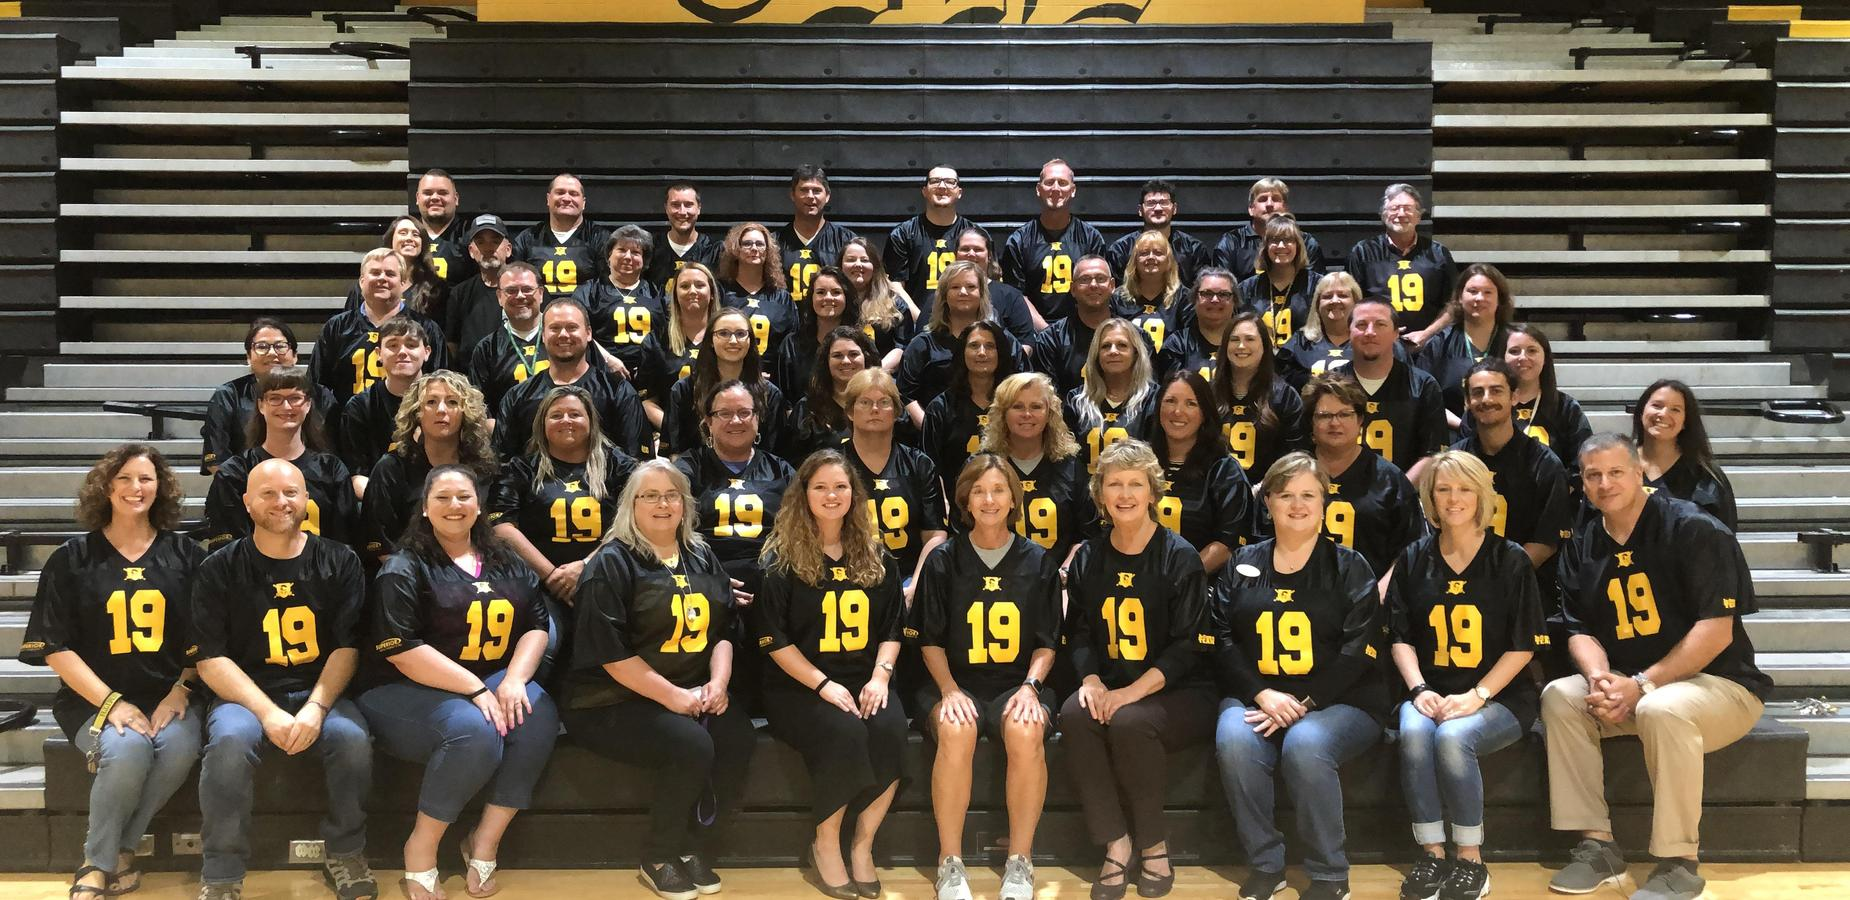 Faculty and Staff 2019